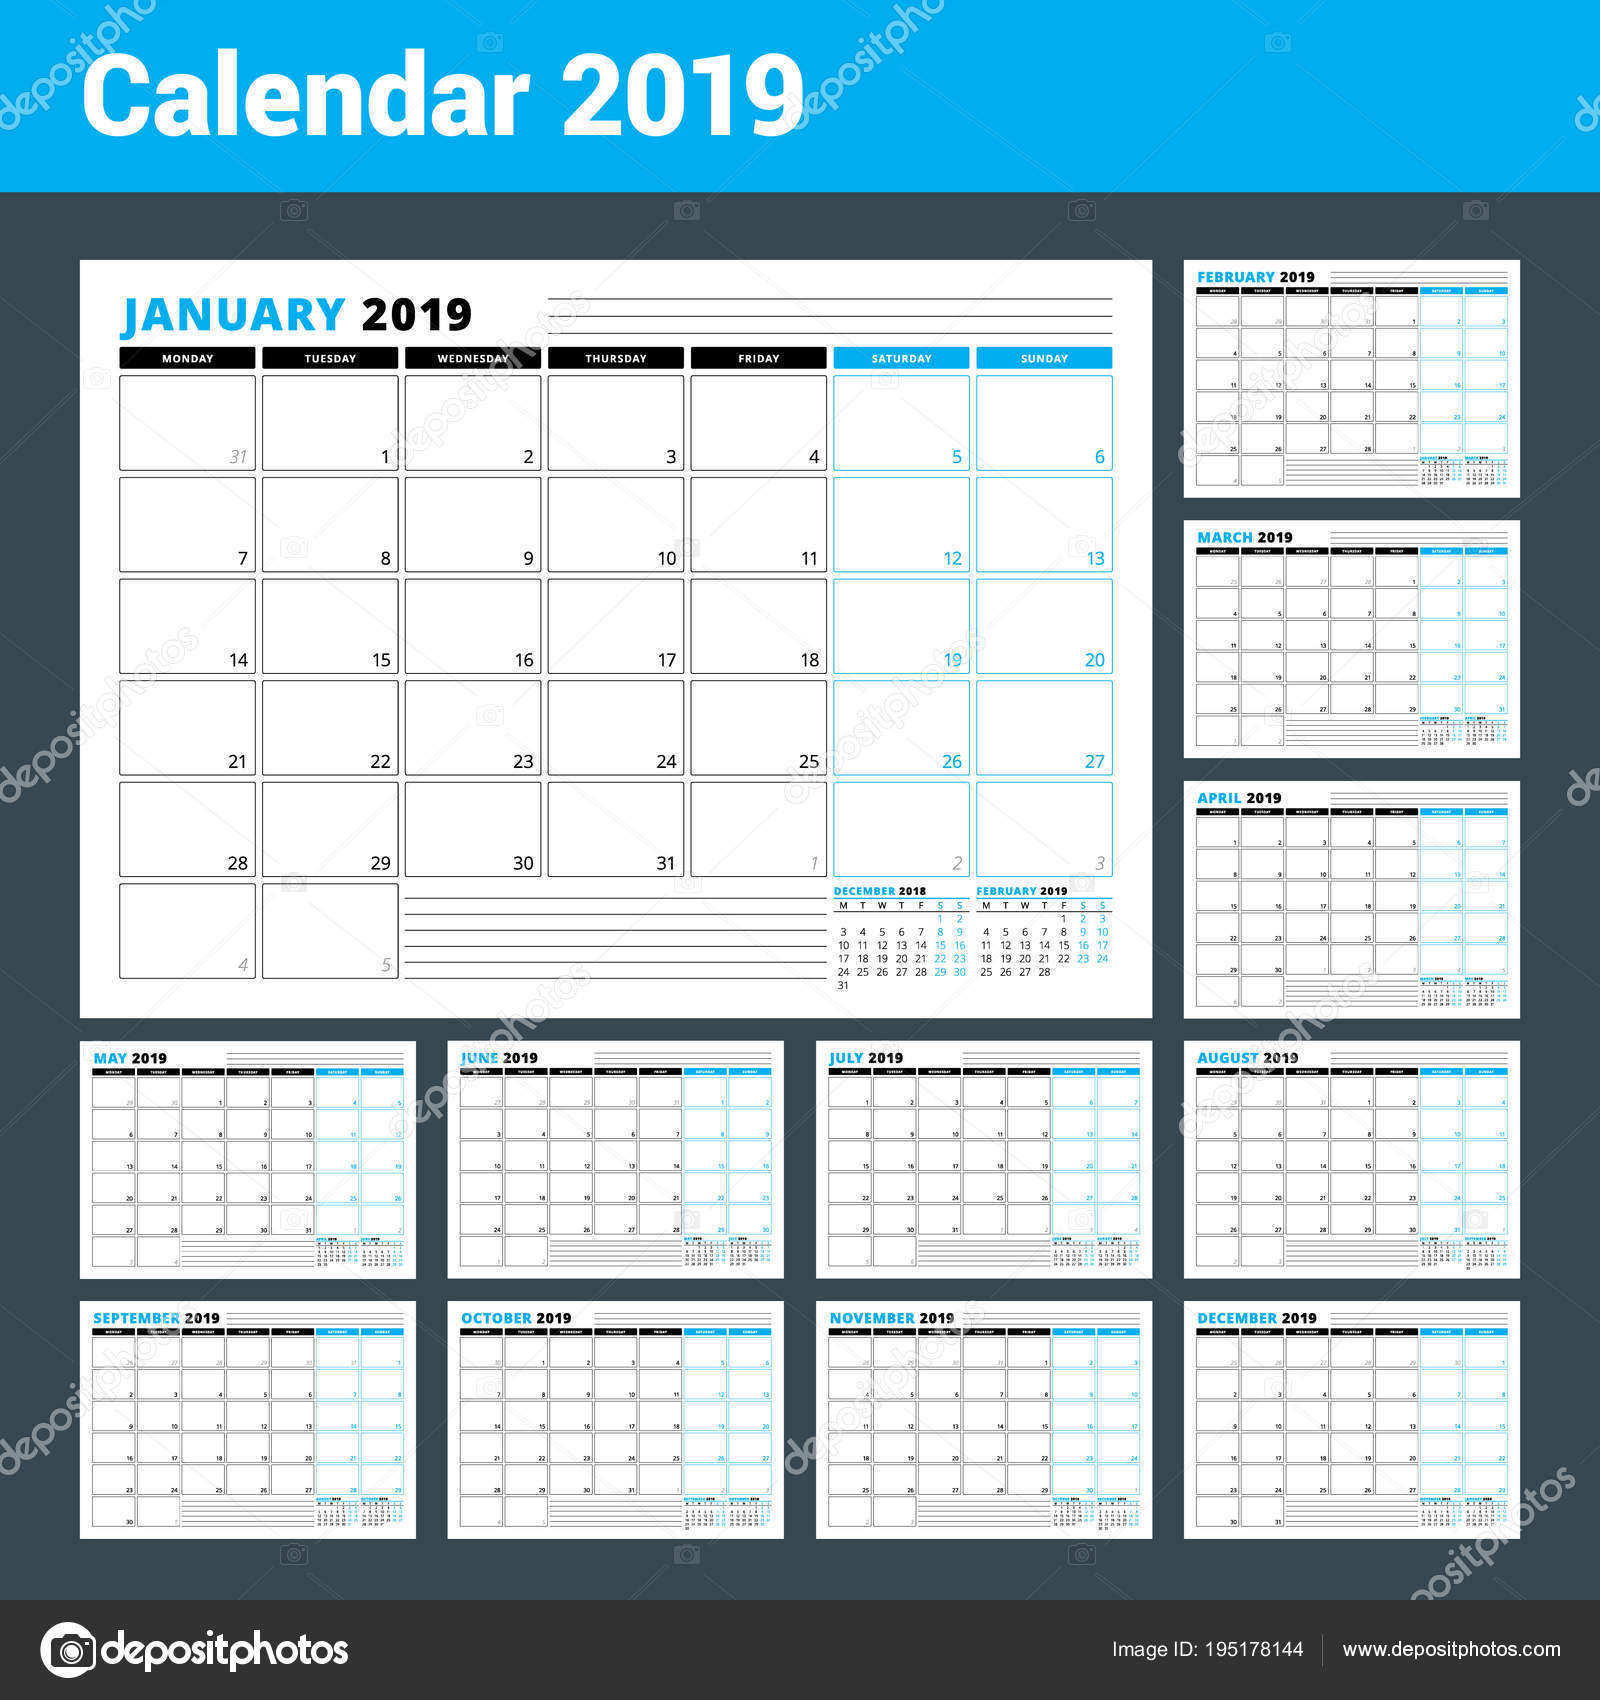 Calendar template for 2019 year business planner template calendar template for 2019 year business planner template stationery design week starts on friedricerecipe Choice Image